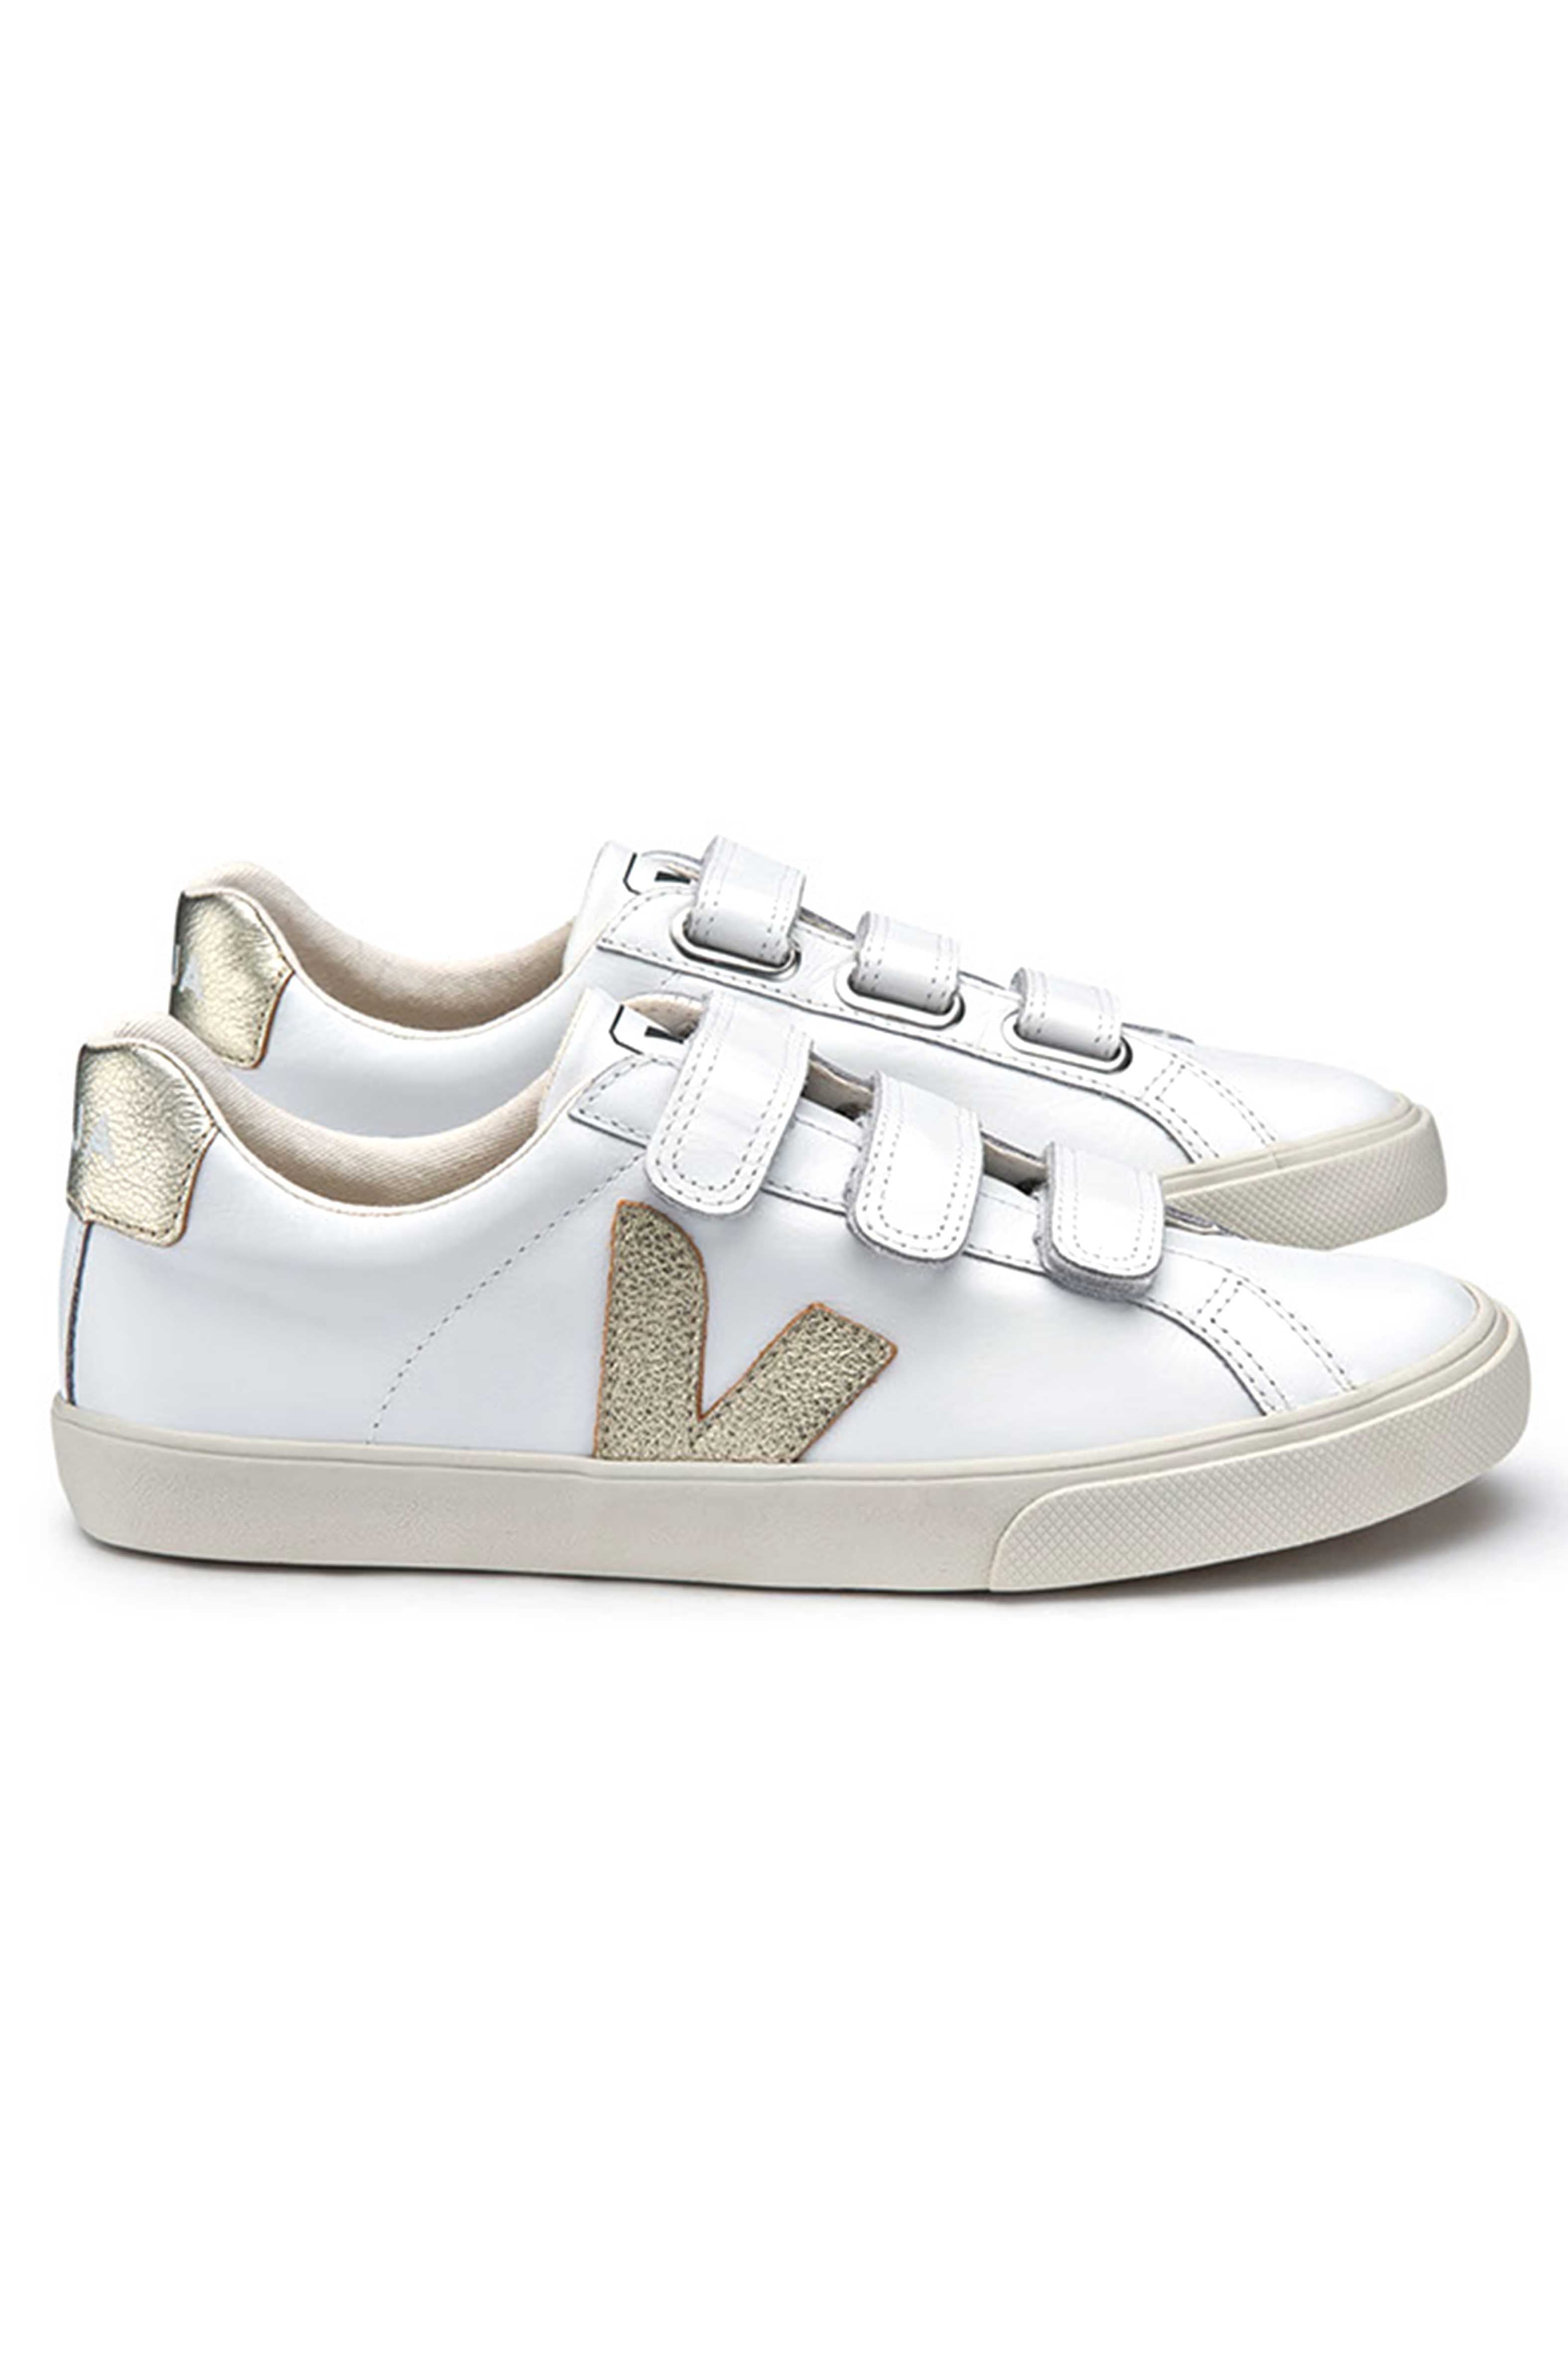 d8190d74eb29e4 Launched; Extra White & Gold Velcro 3-Lock Leather Sneaker by Veja Spring  2018.